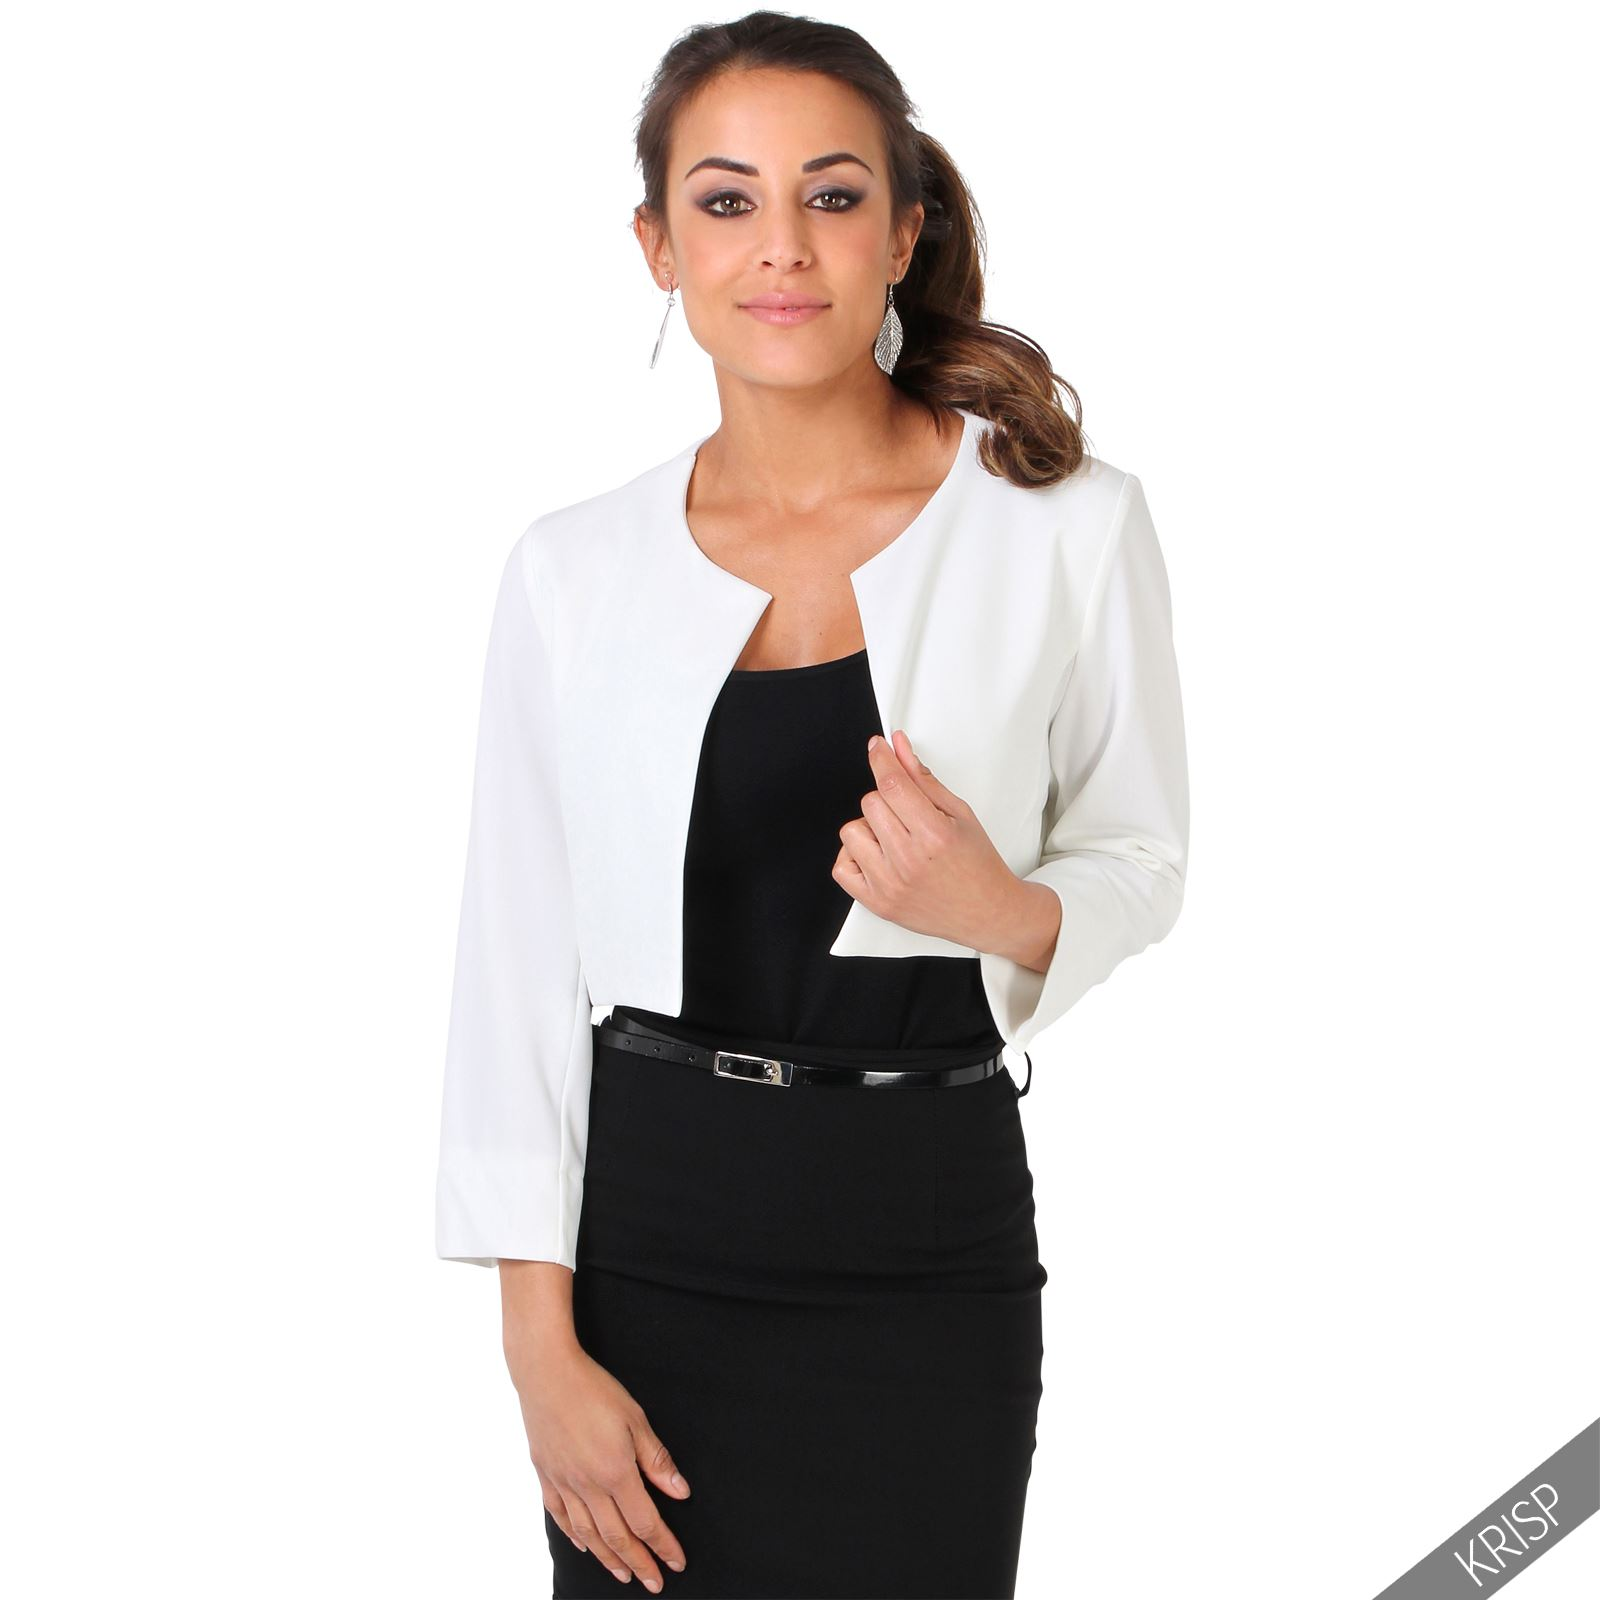 damen kurzer blazer bolero jacke business abendmode festlich hochzeit elegant ebay. Black Bedroom Furniture Sets. Home Design Ideas